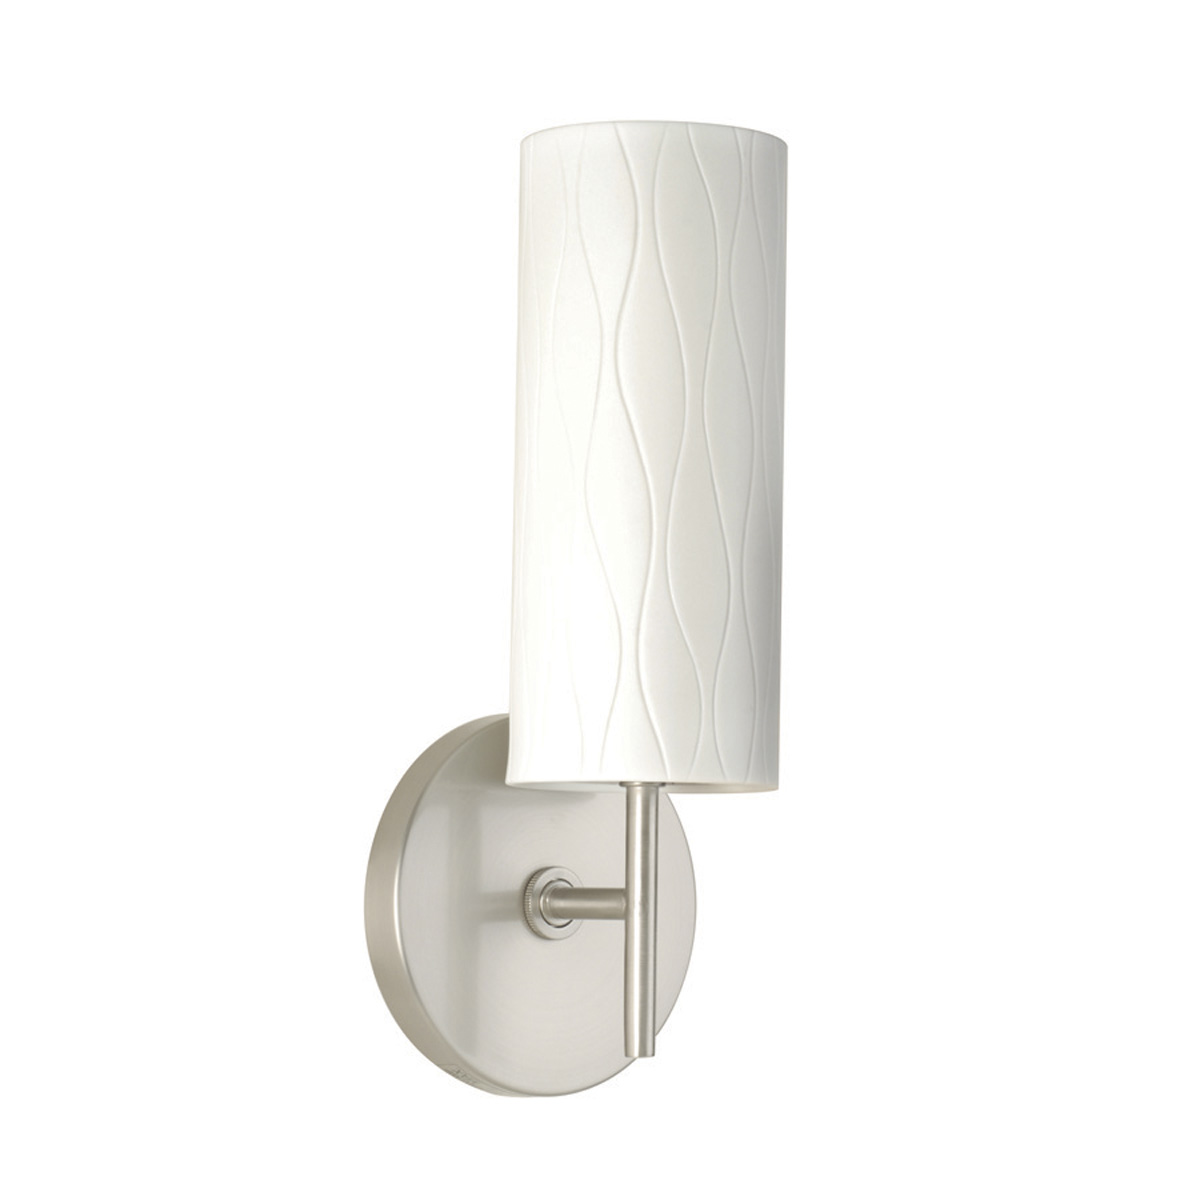 WAC Lighting Decorative Wall Sconces Waves - Olighting